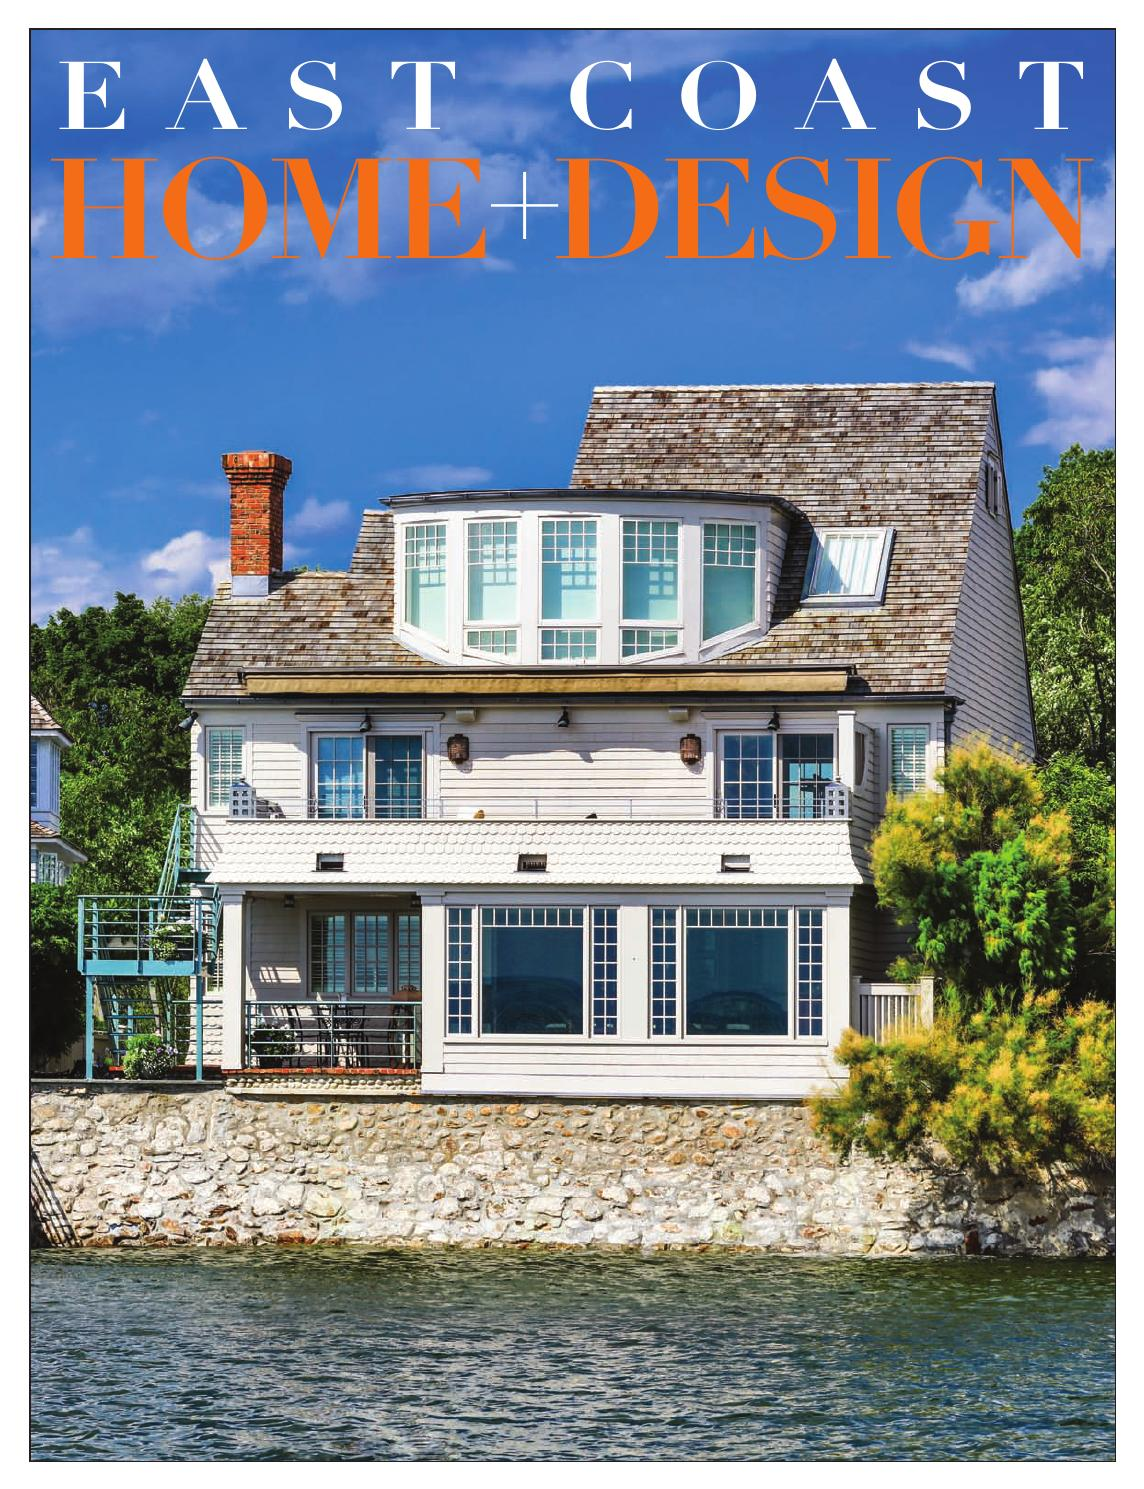 Superior East Coast Home + Design March / April 2016 By East Coast Home Publishing    Issuu